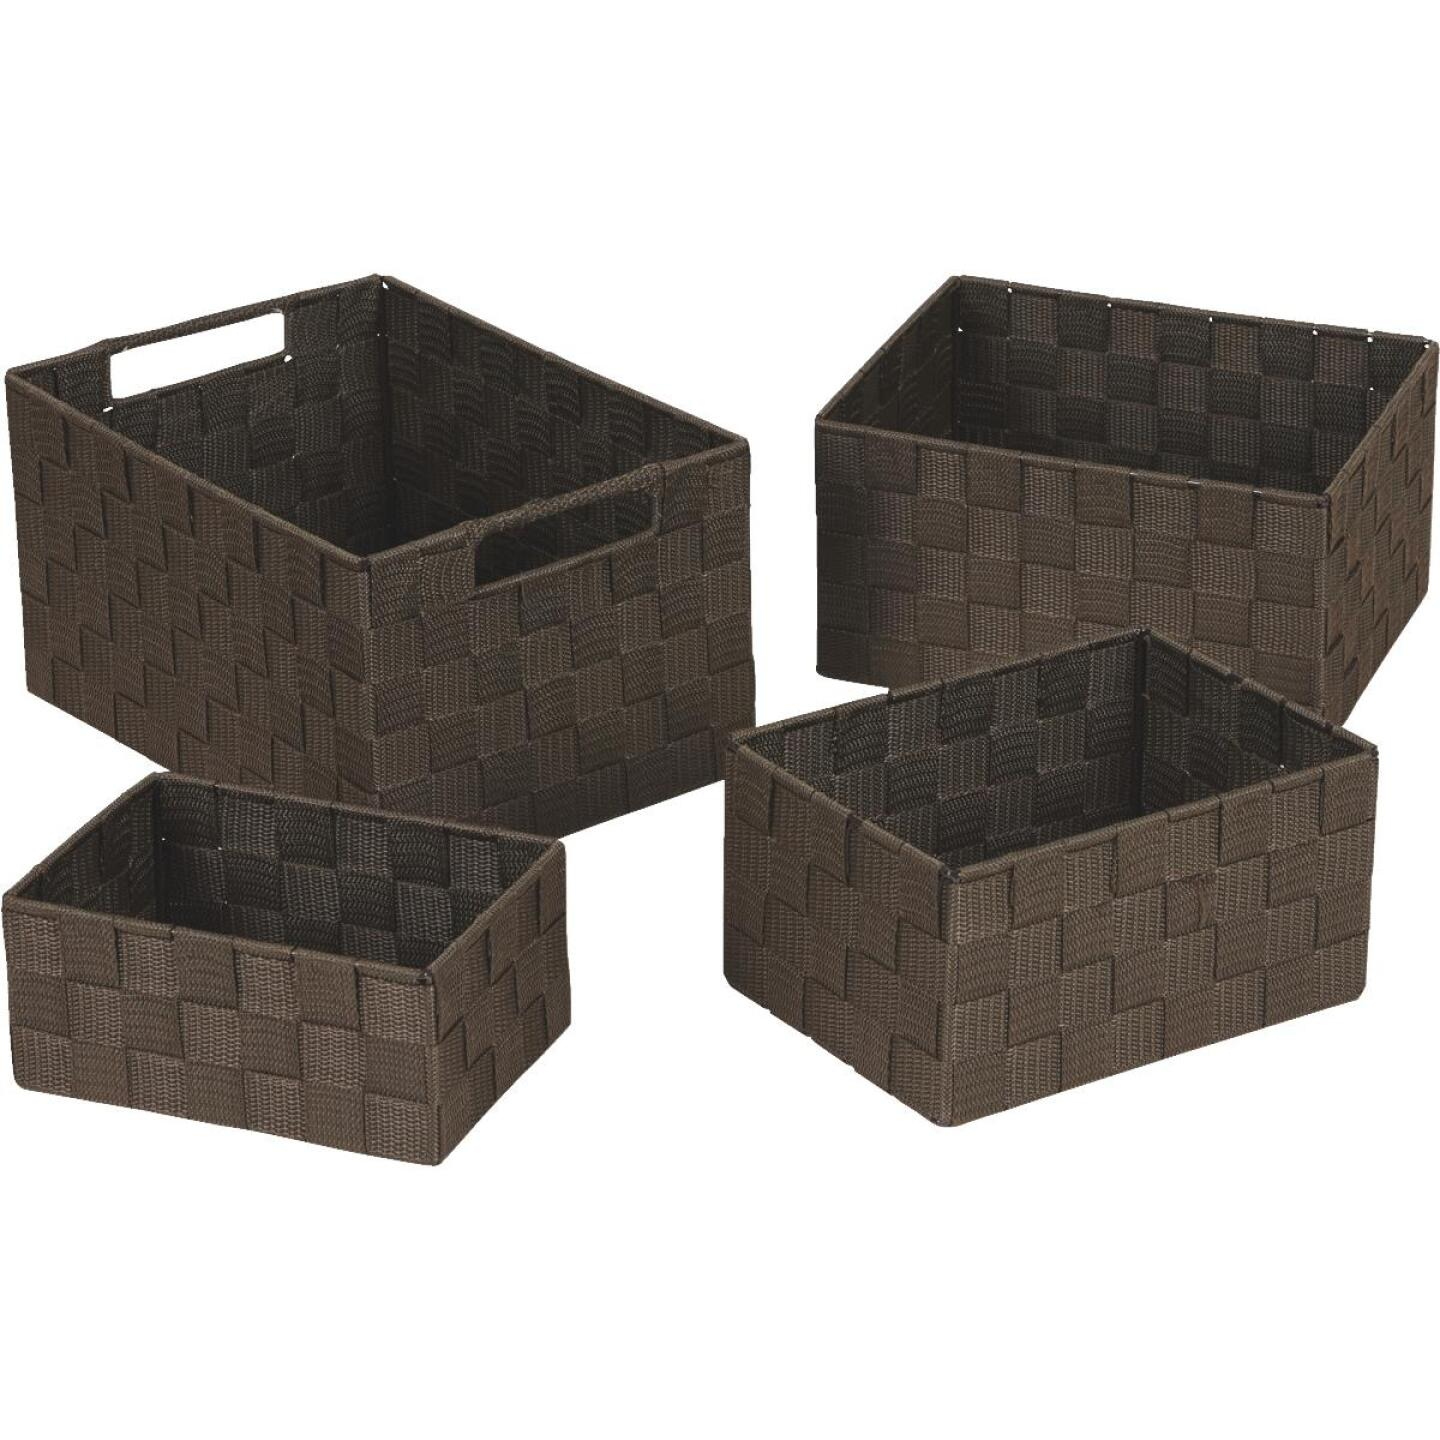 Home Impressions 4-Piece Woven Storage Basket Set, Brown Image 1